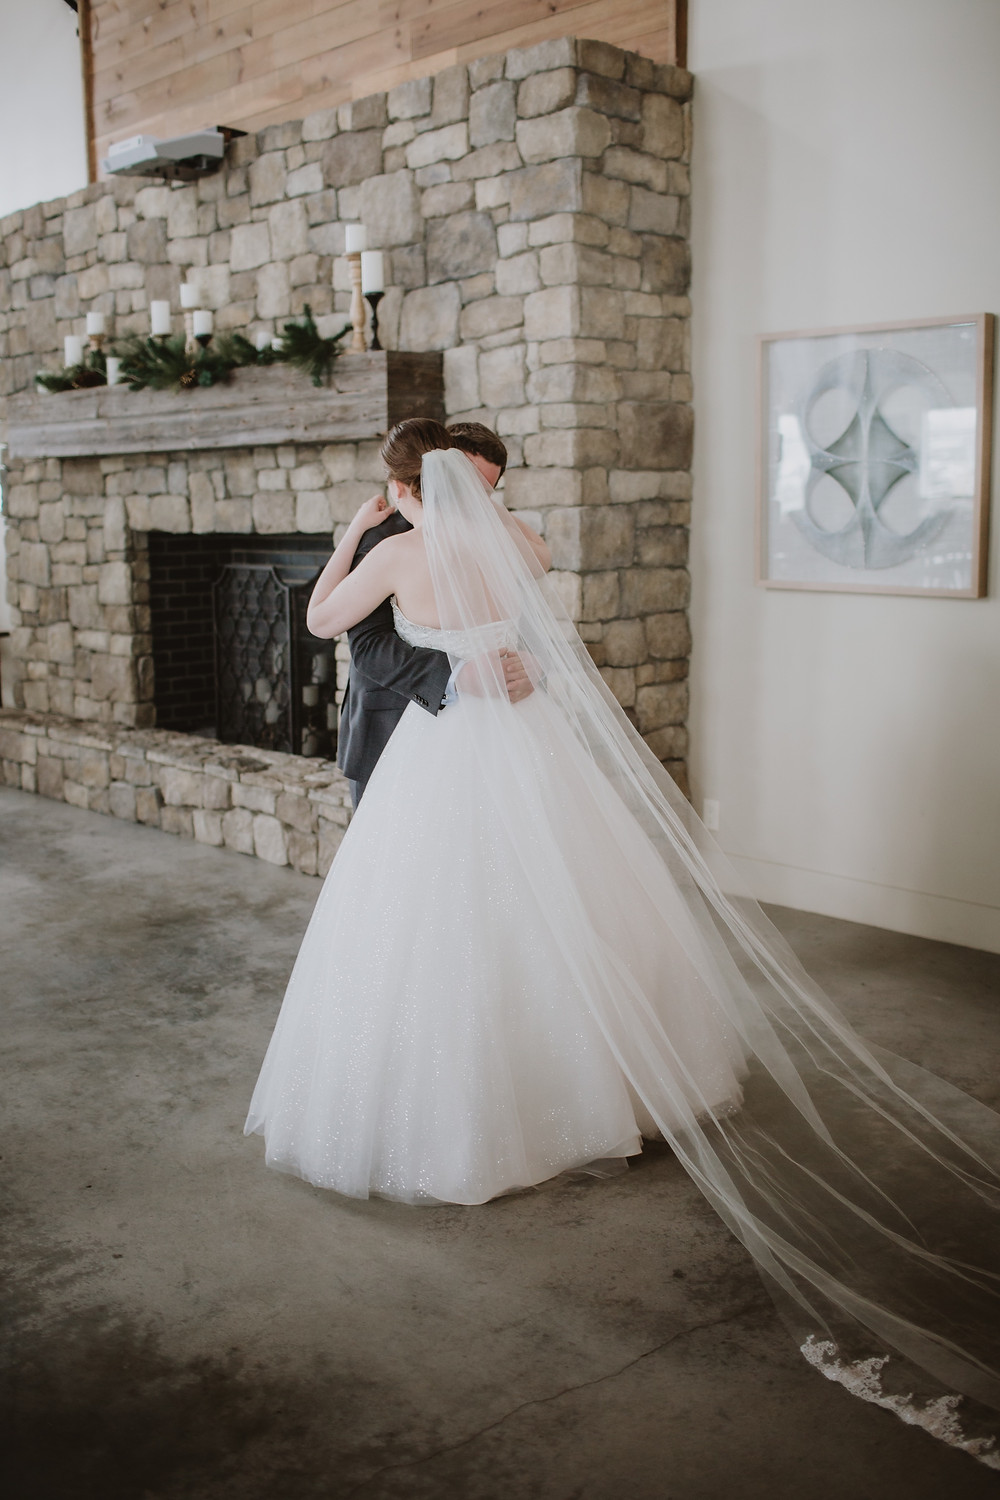 Wedding couple embraces after first look.